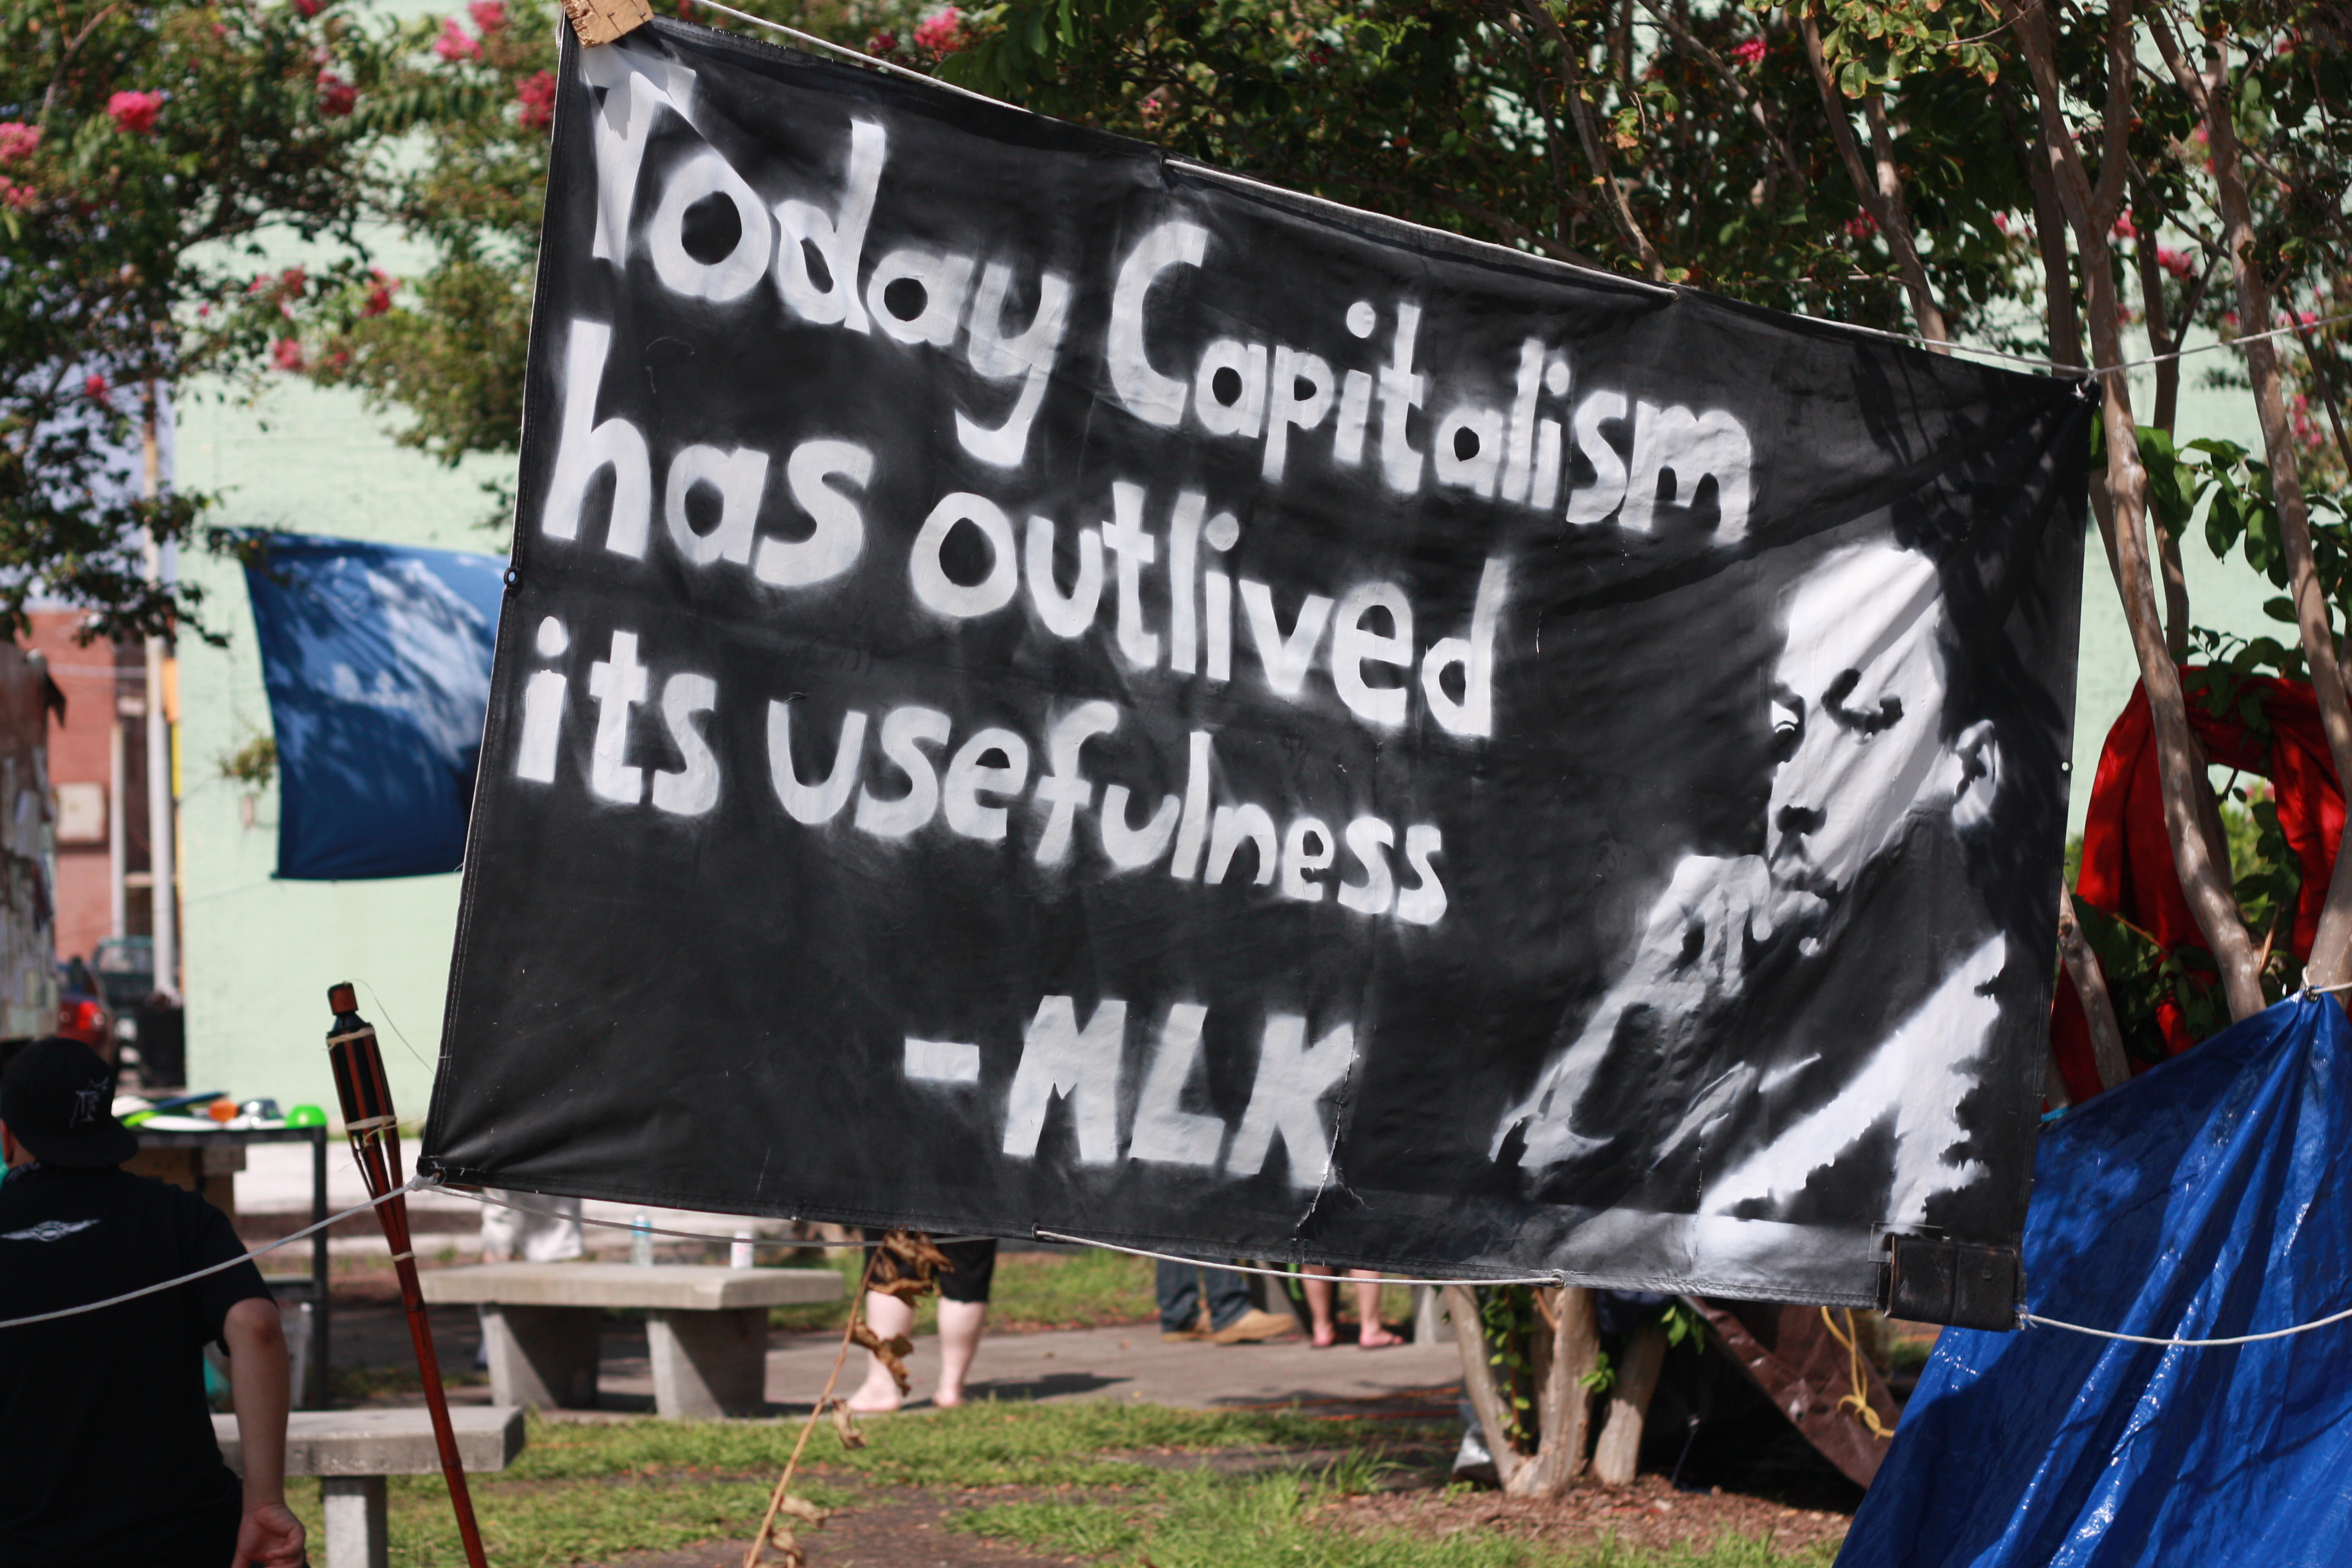 http://upload.wikimedia.org/wikipedia/commons/5/53/%27Today_capitalism_has_outlived_its_usefulness%27_MLK.jpg